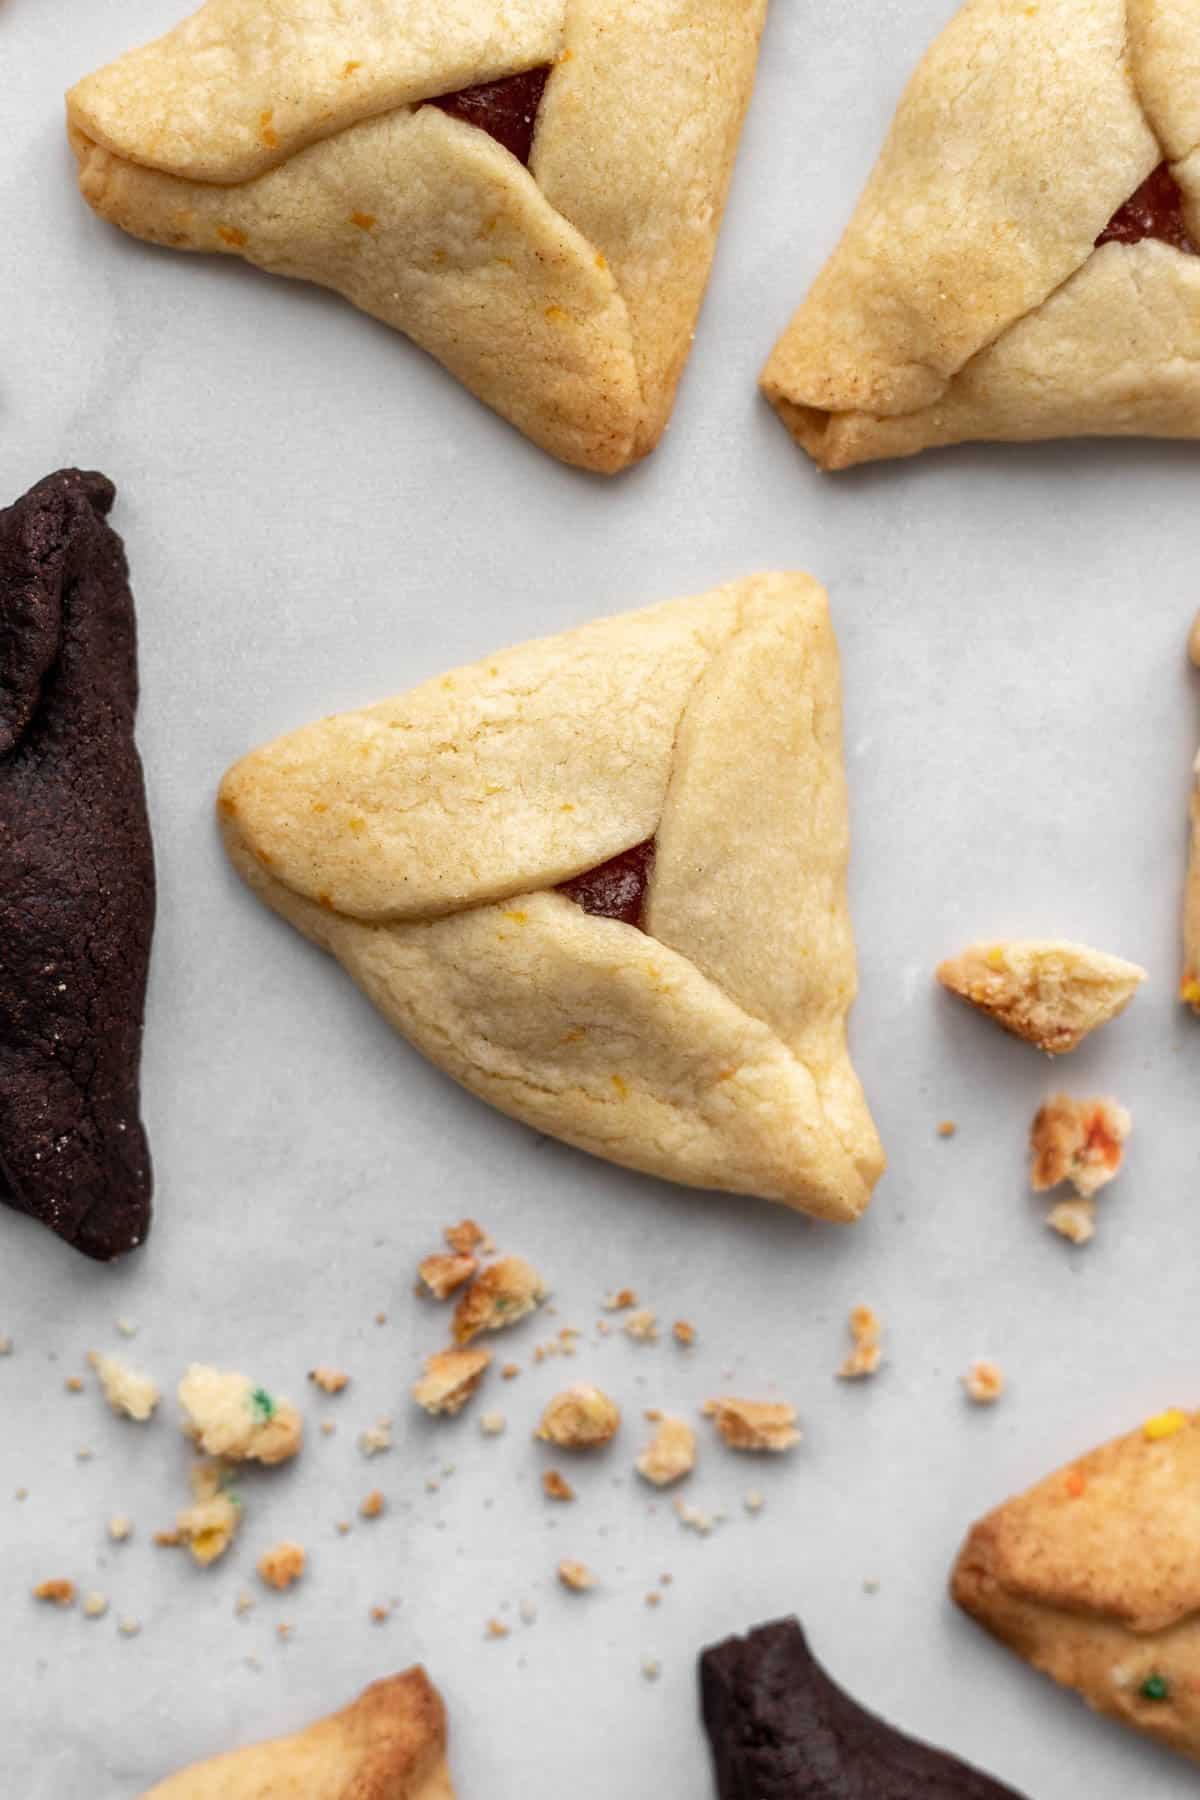 An orange marmalade hamantaschen surrounded by chocolate peanut butter and cinnamon apple hamantaschen.